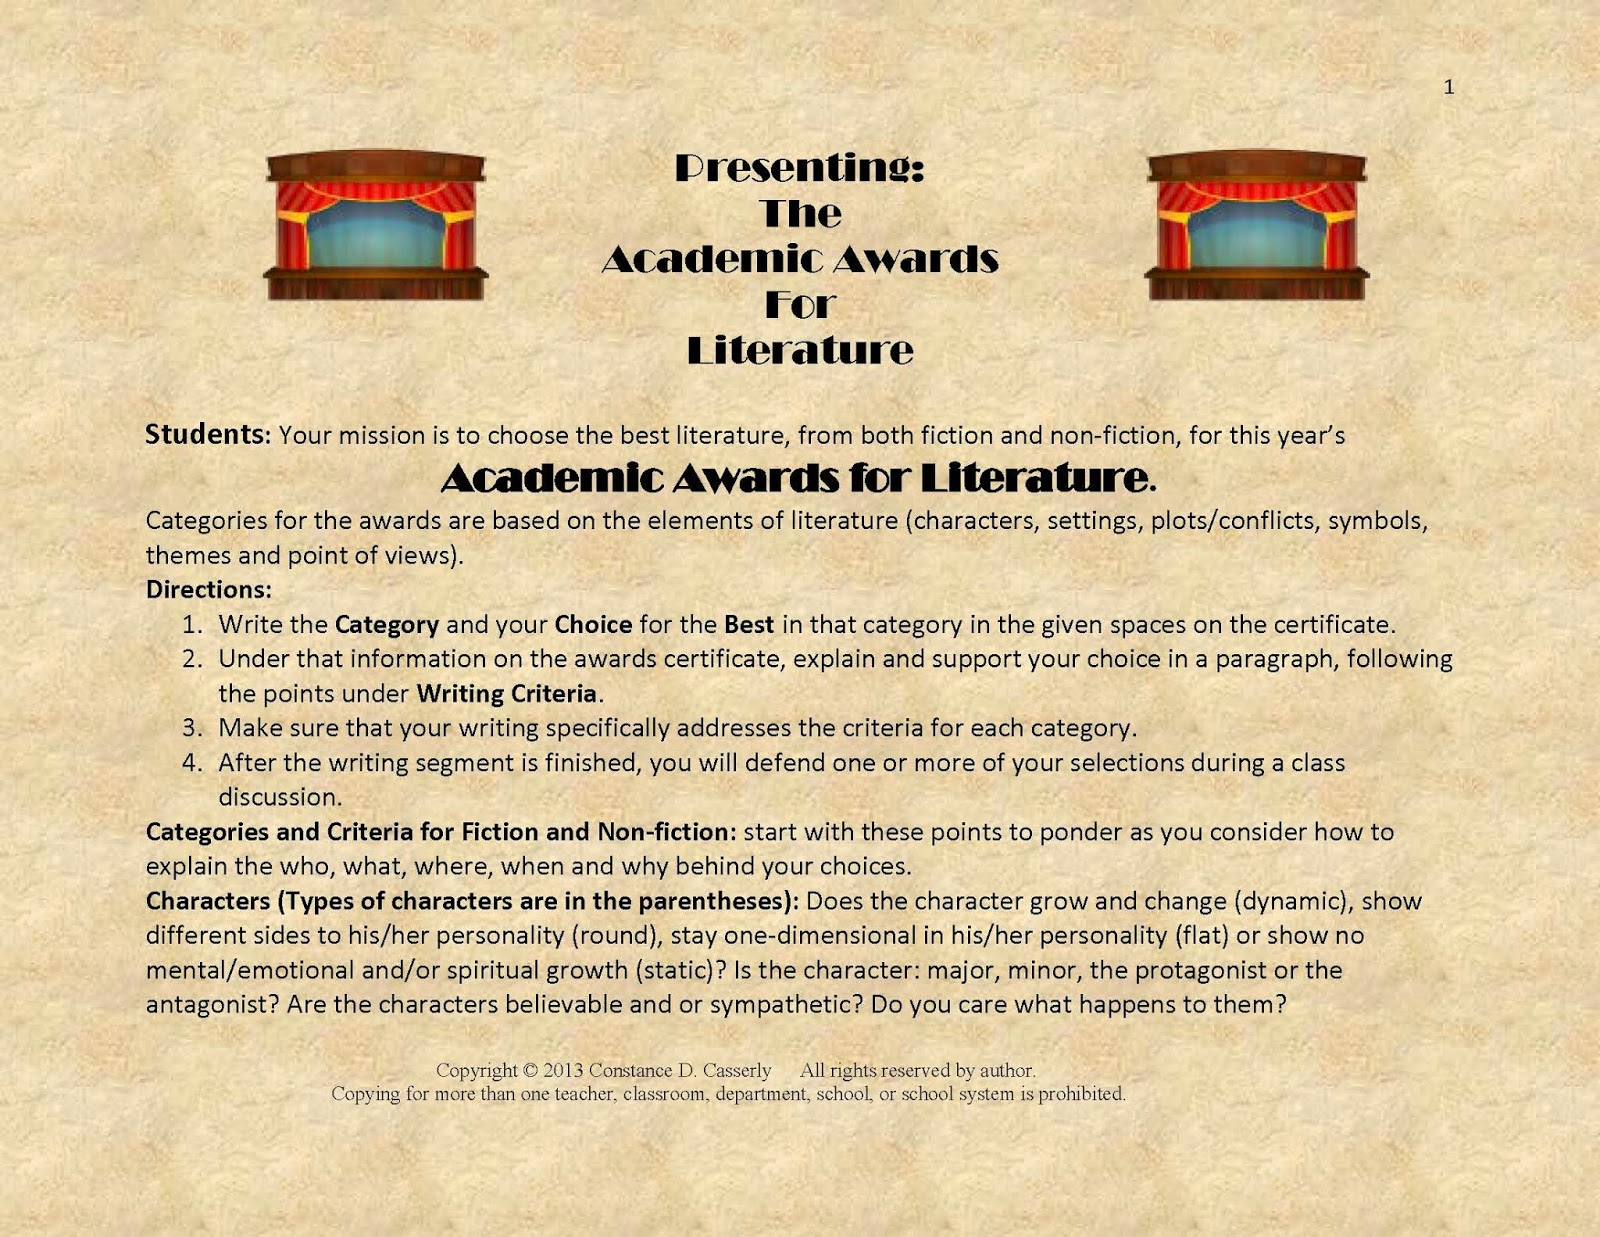 Presenting the Academic Awards for Literature